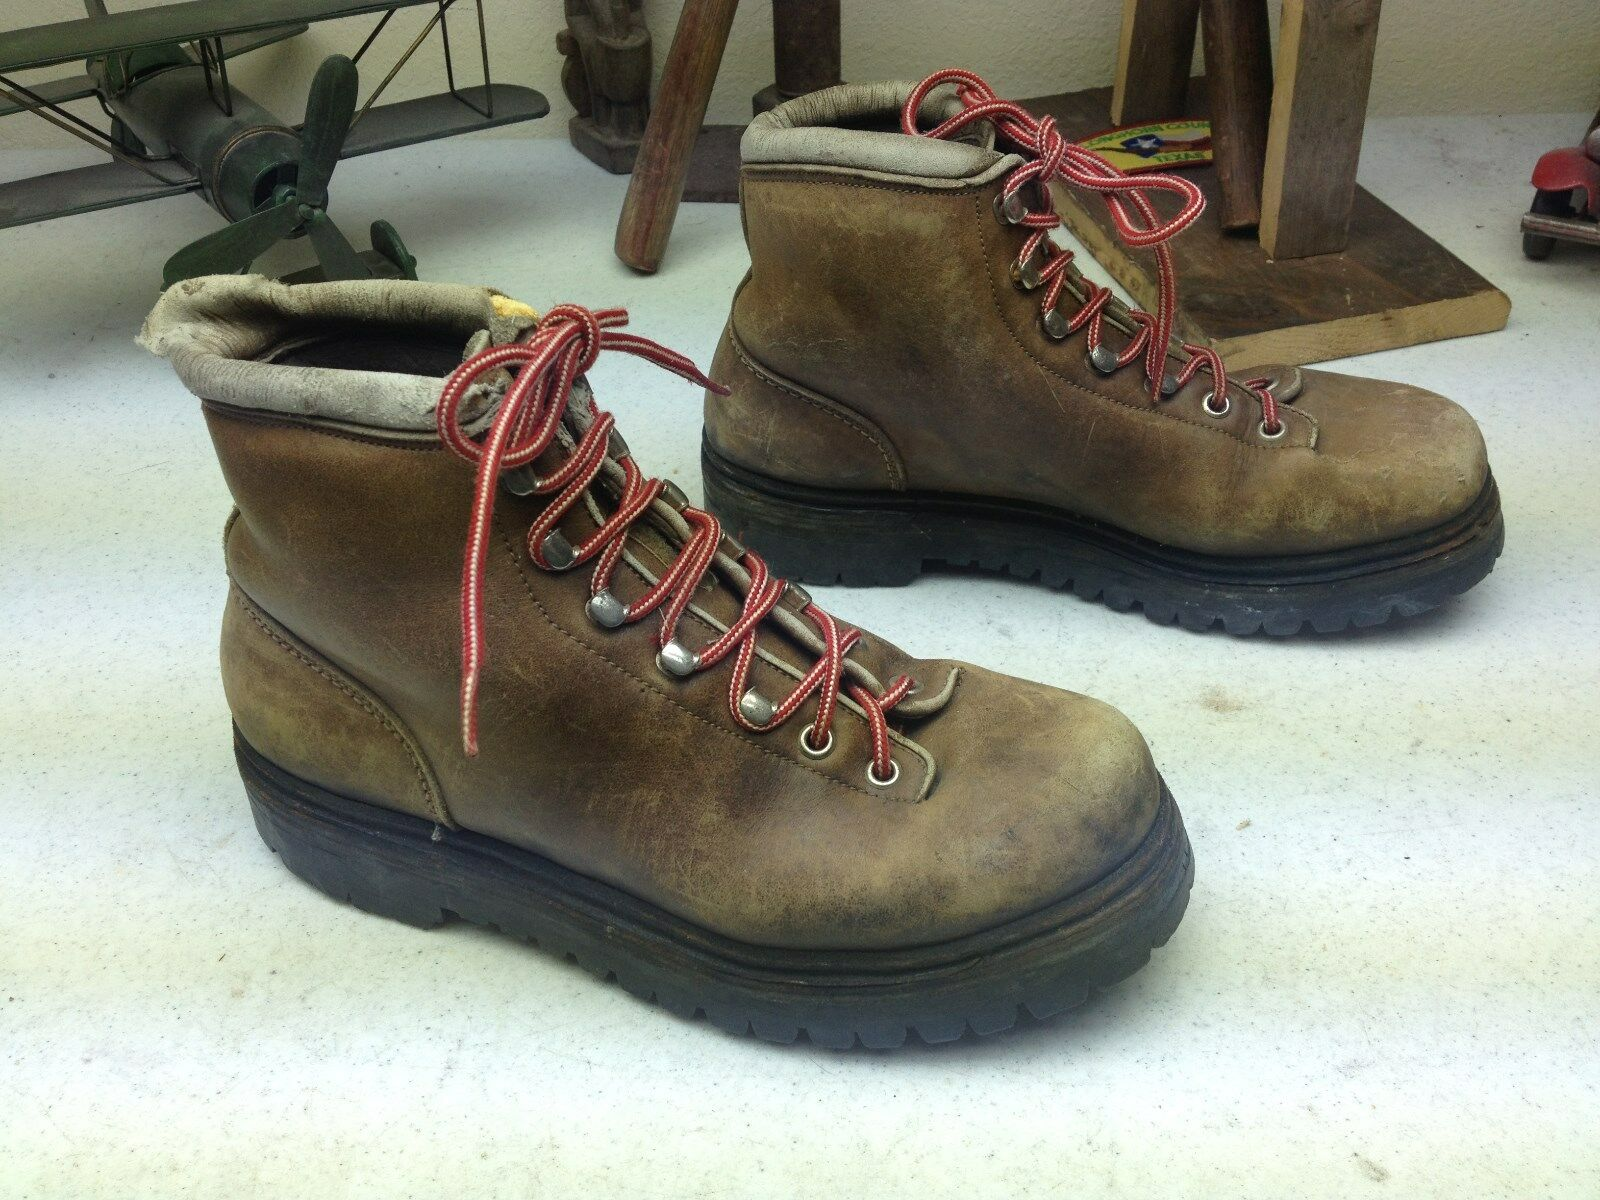 VINTAGE FABIANO braun LEATHER LACE UP UP UP MOUNTAINEERING HIKING Stiefel 6.5 M 0492eb